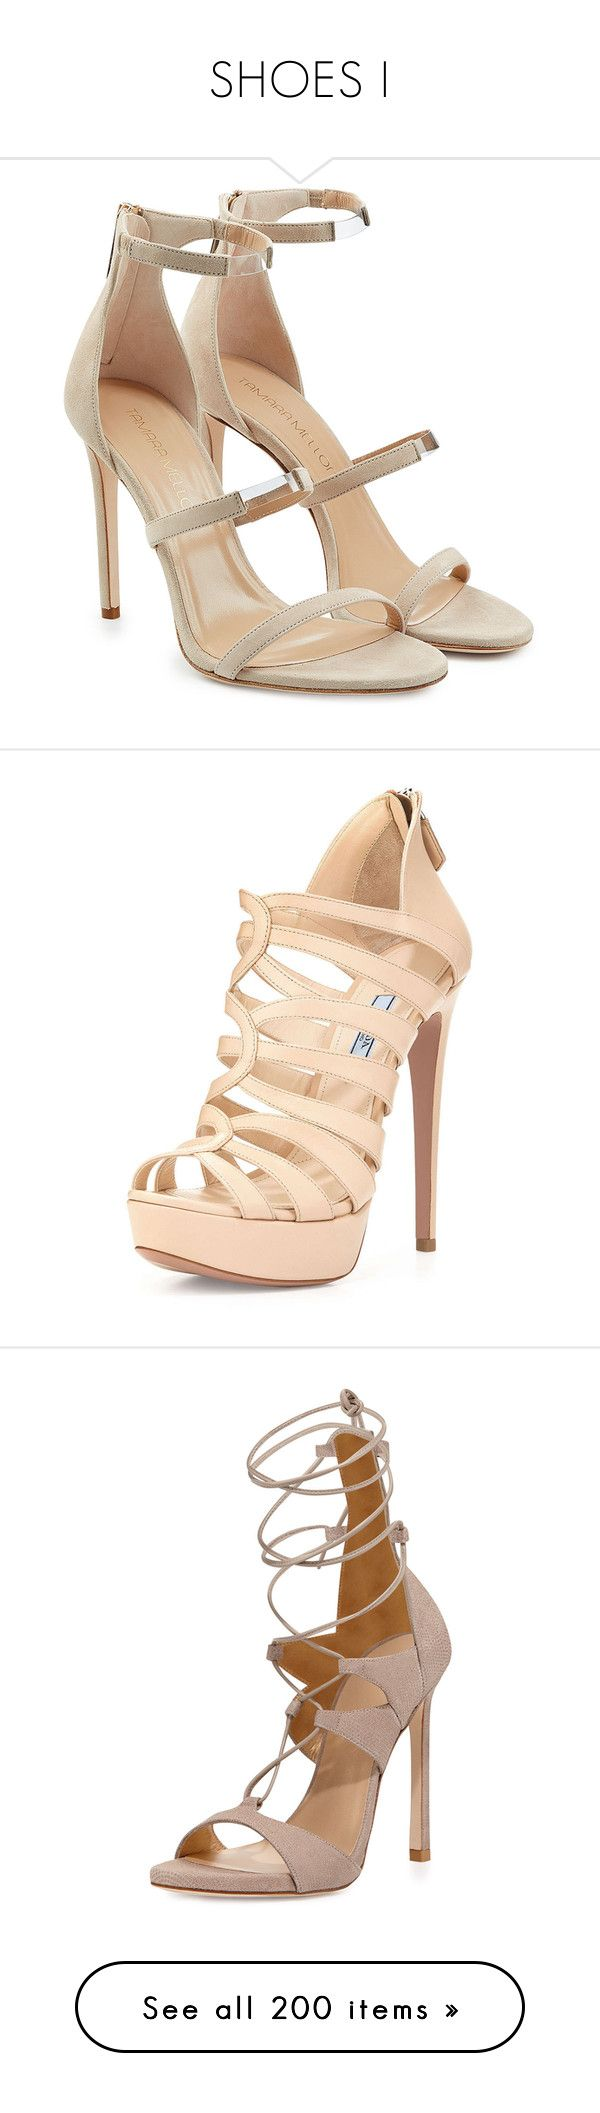 """SHOES I"" by wanda-india-acosta ❤ liked on Polyvore featuring shoes, sandals, heels, schuhe, tamara mellon, beige, high heel stilettos, strappy high heel sandals, beige shoes and high heel sandals"